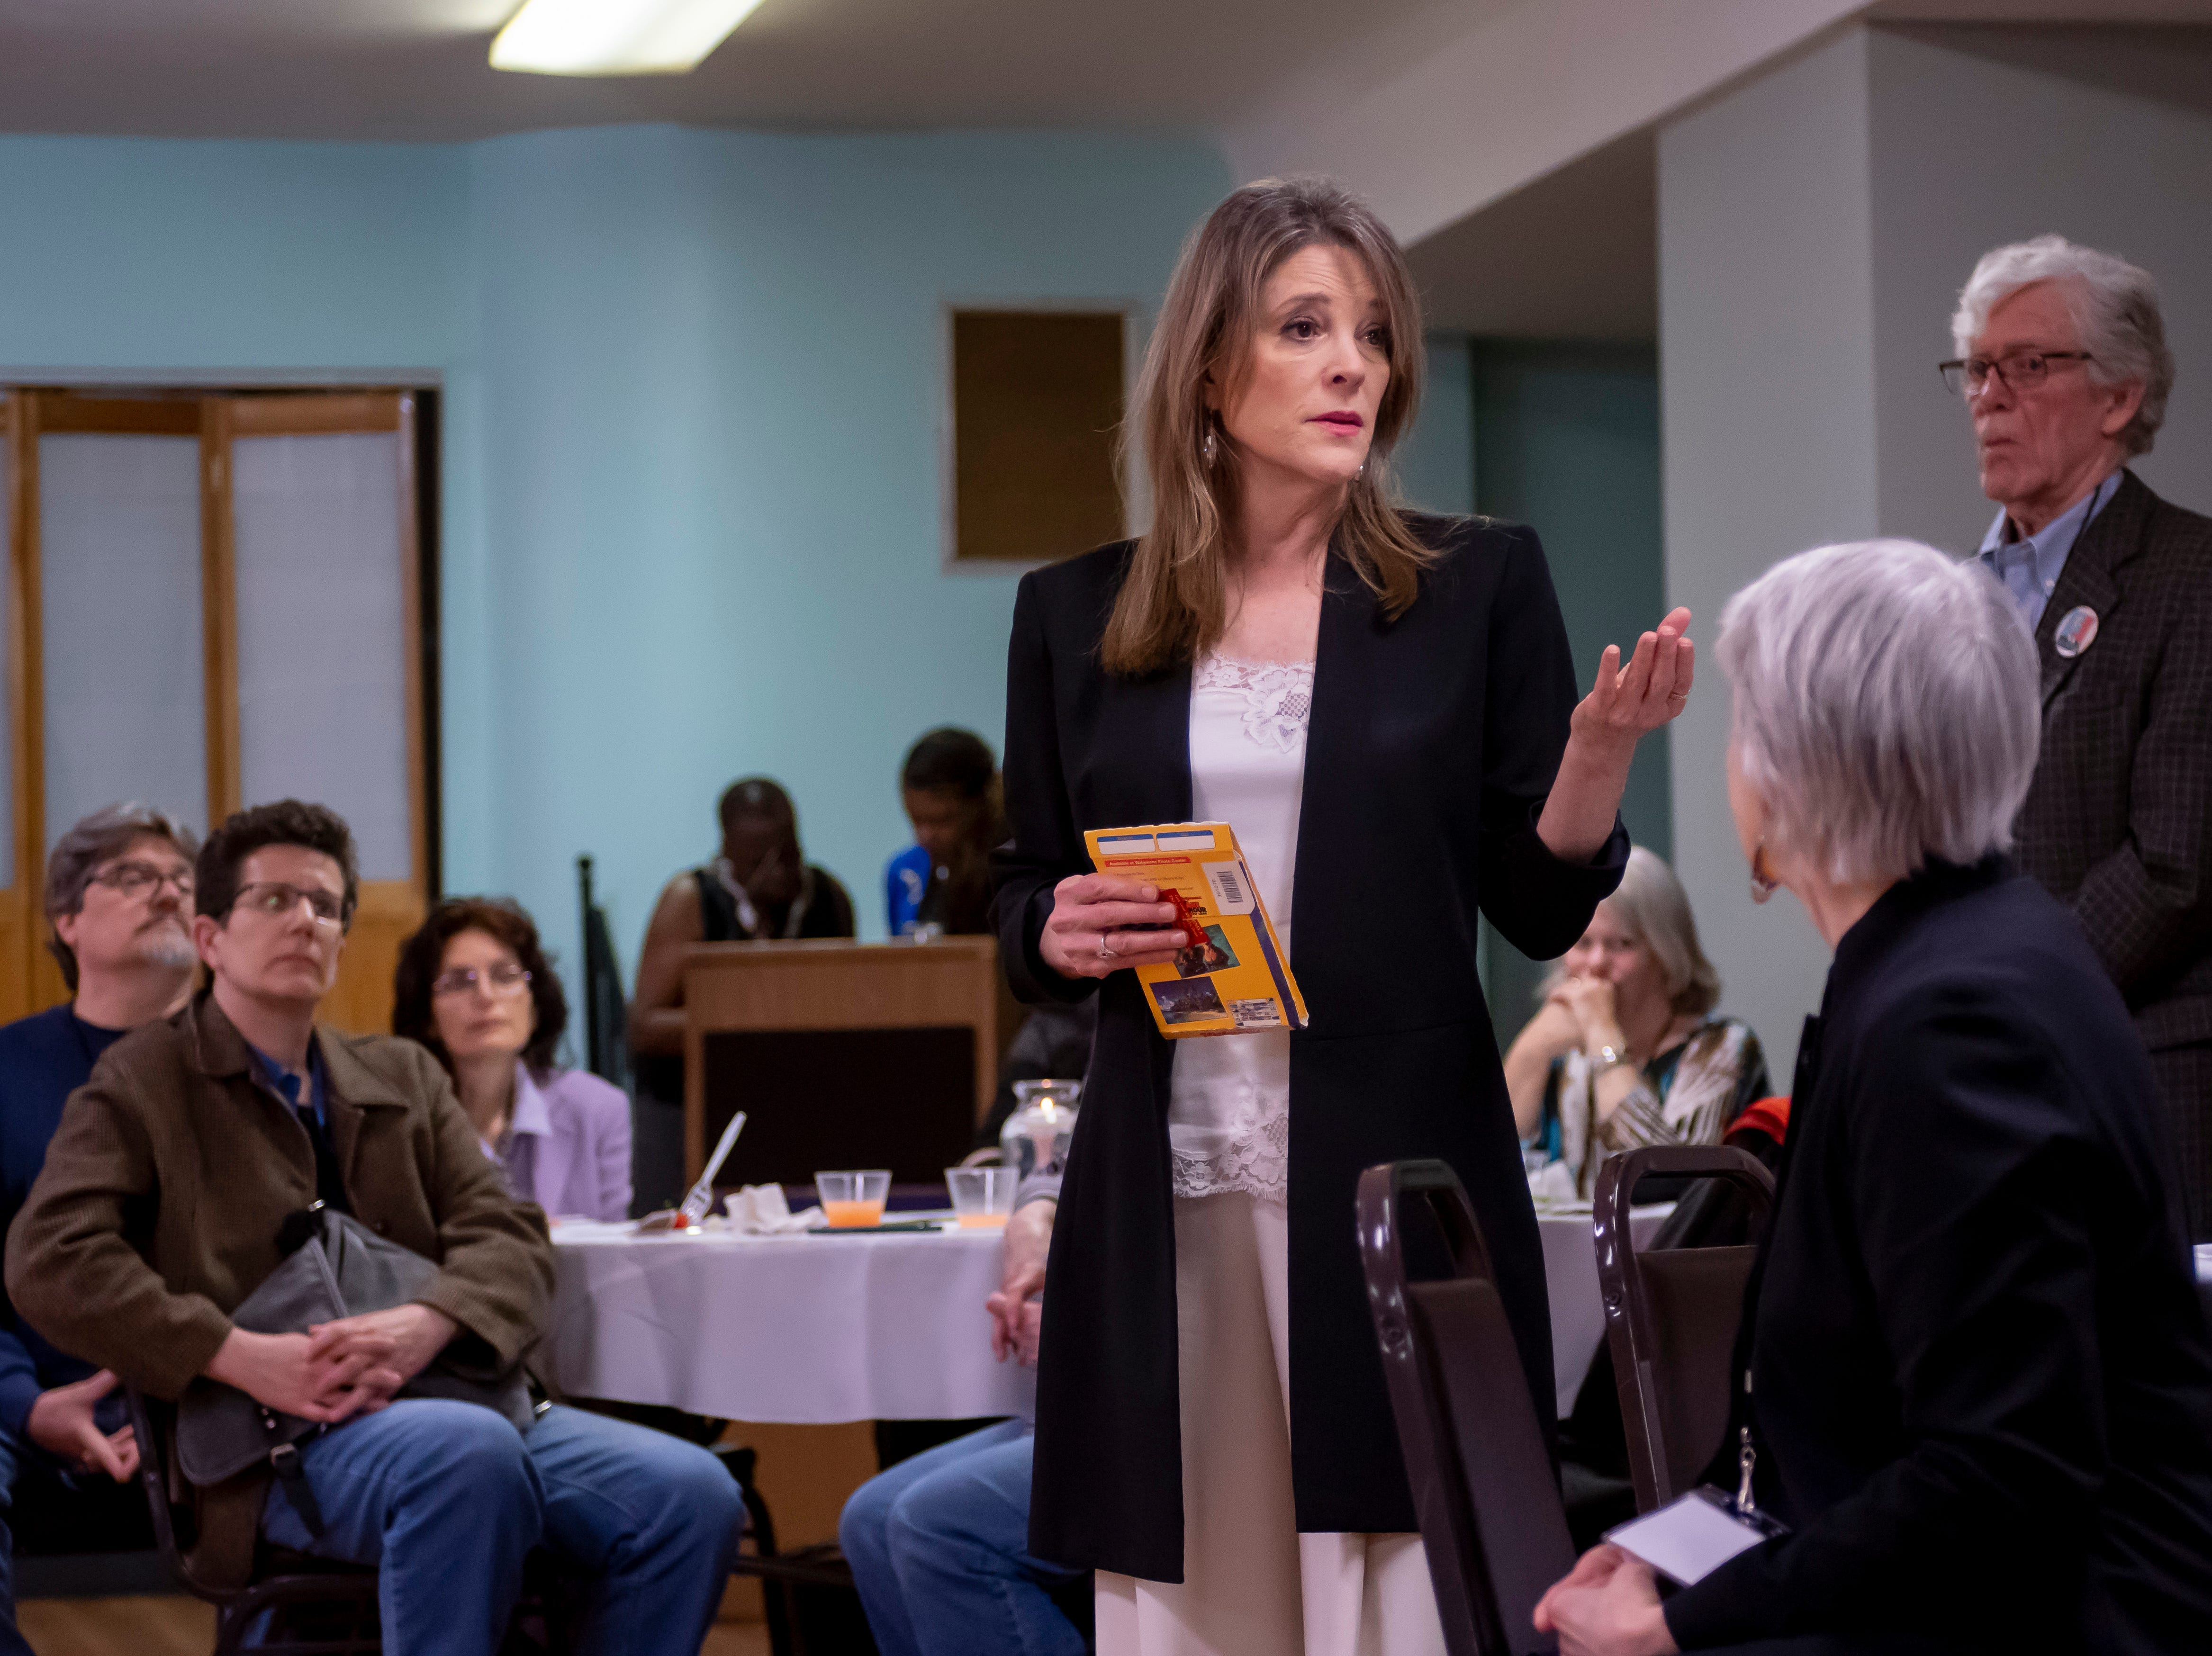 Author and Presidential candidate Marianne Williamson, chats during a VIP reception before a town hall at the Detroit Unity Temple.